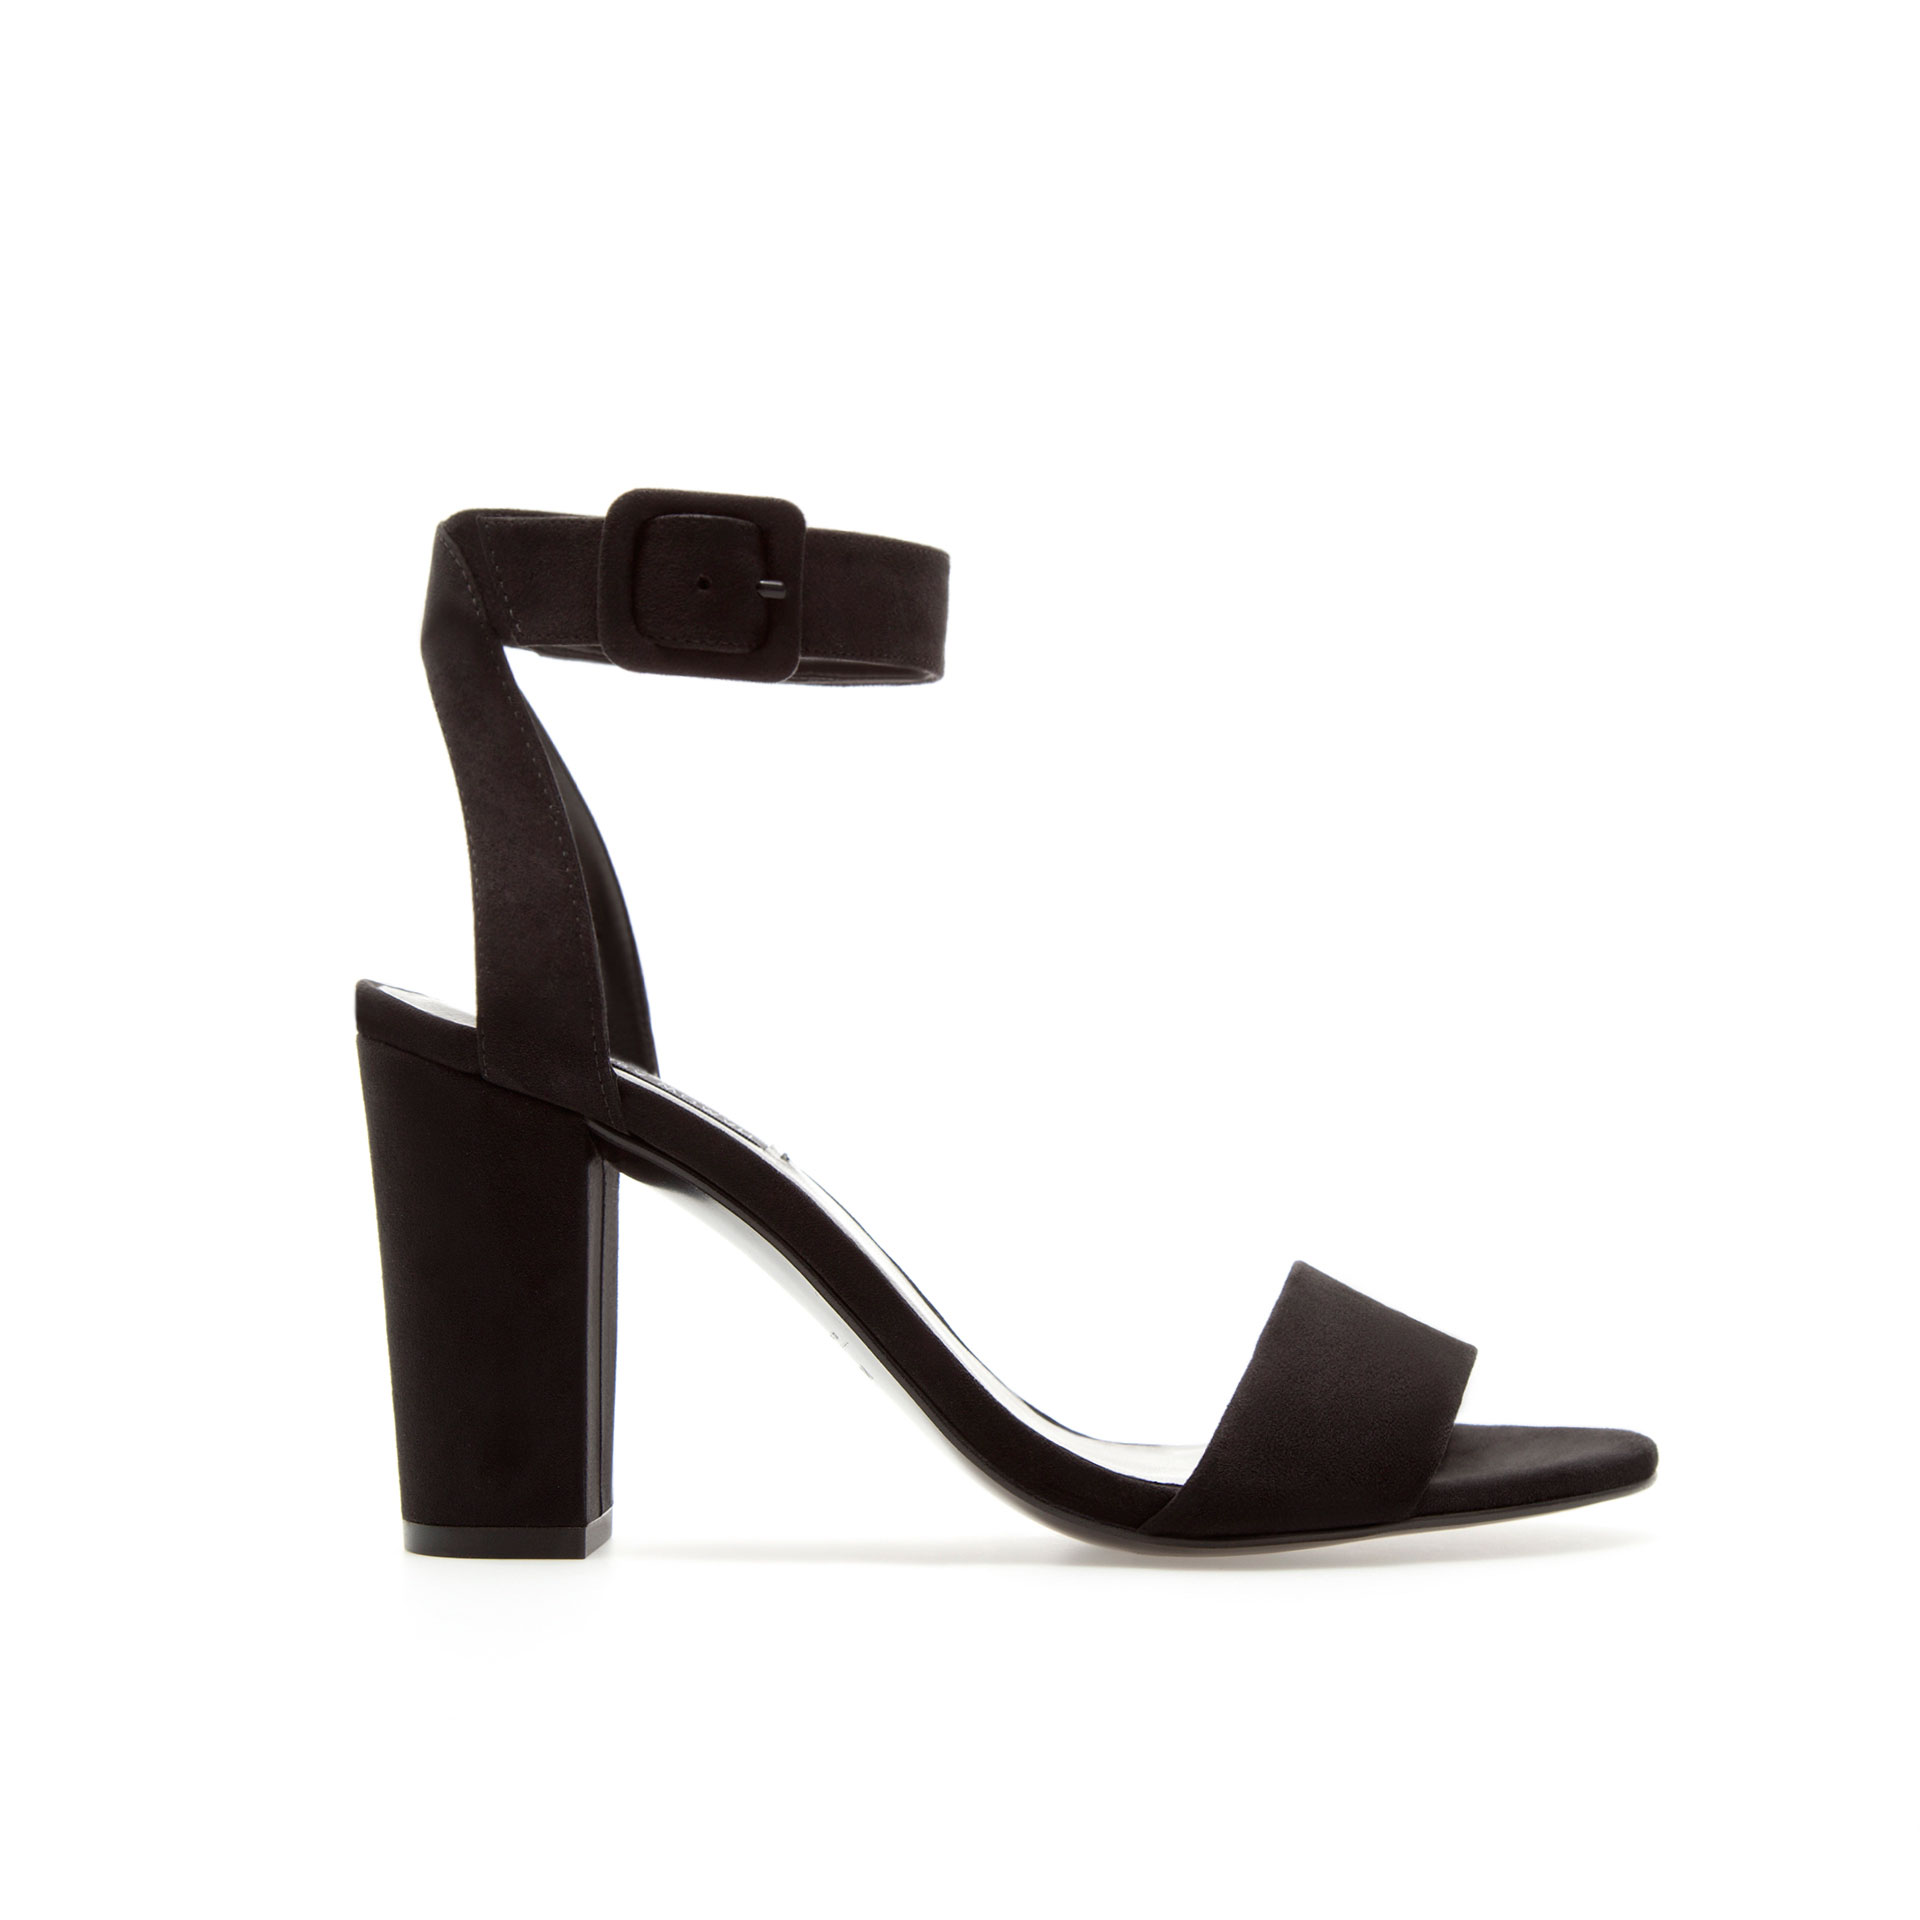 Zara Mid Heel Sandals with Ankle Strap in Black | Lyst